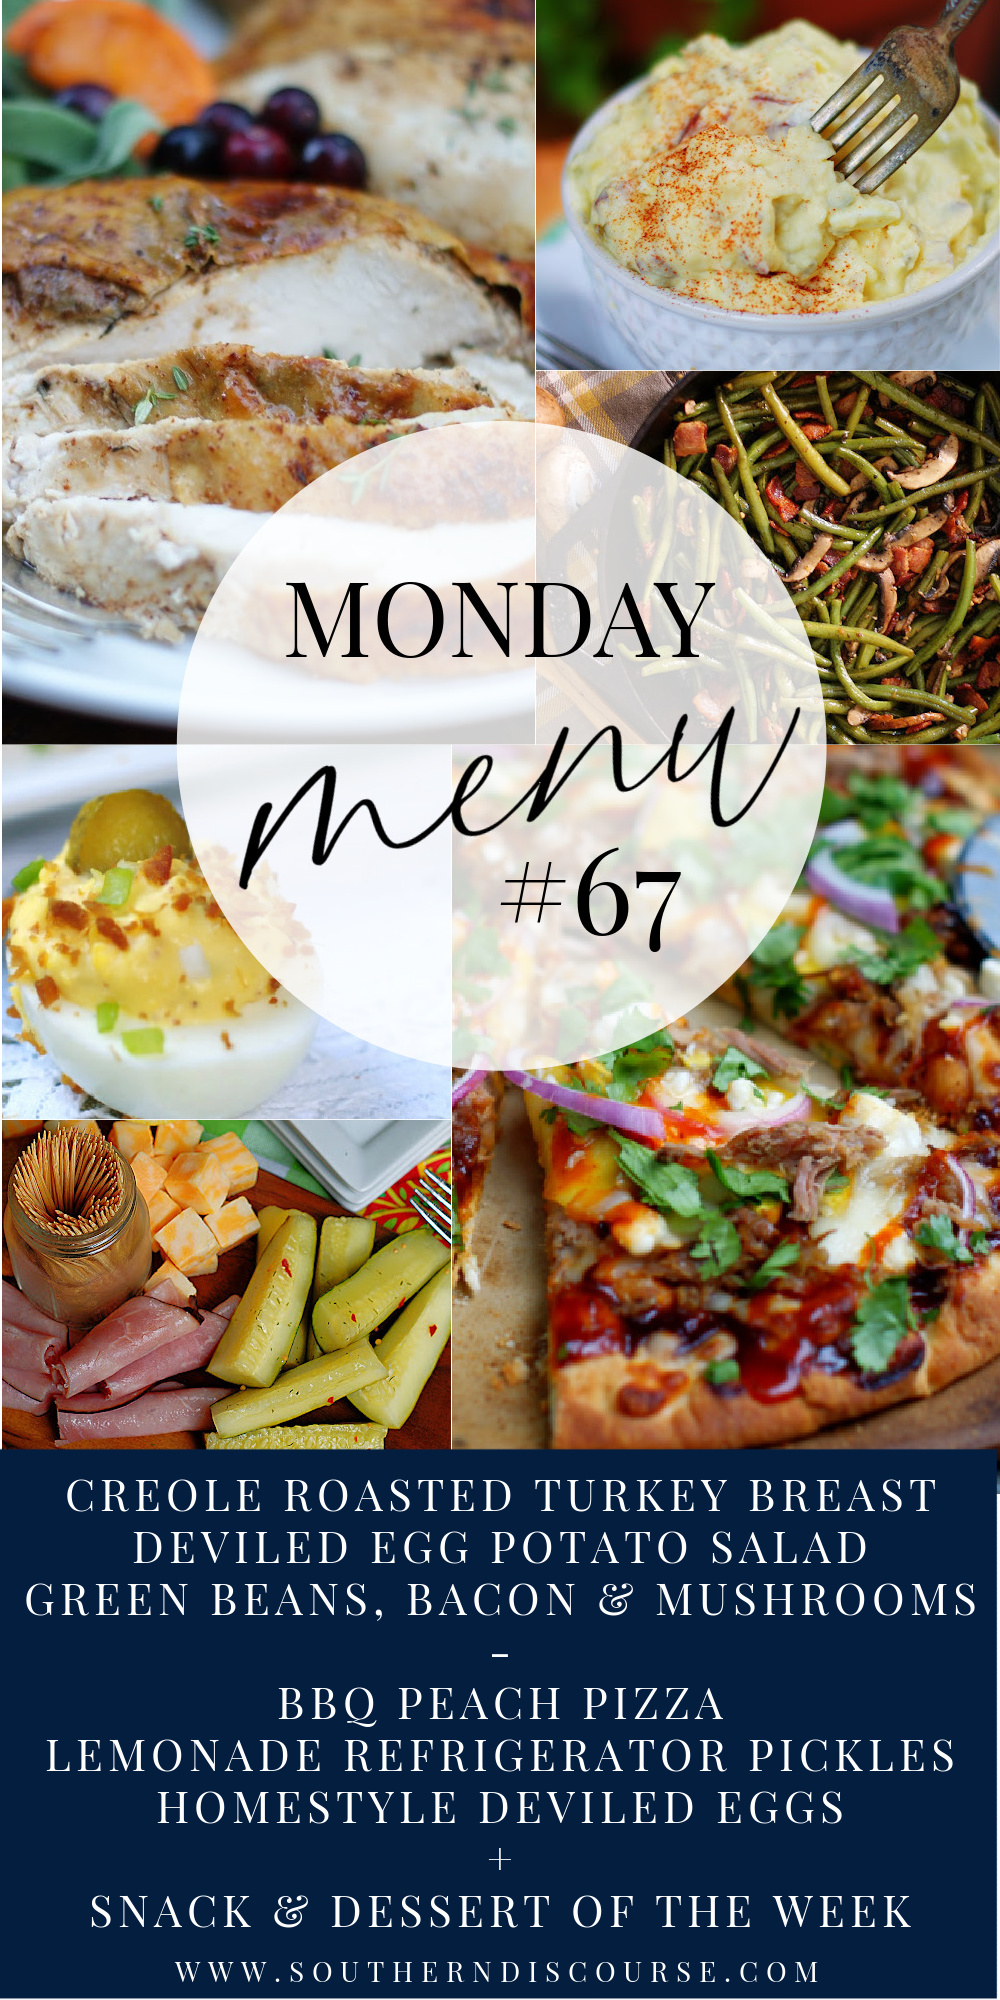 Monday Menu 67 has 2 great menus- Easy Creole Turkey Dinner & Southern Pizza Night, + Dessert of the Week, What We're Snacking on & a recipe to make breakfast easy!